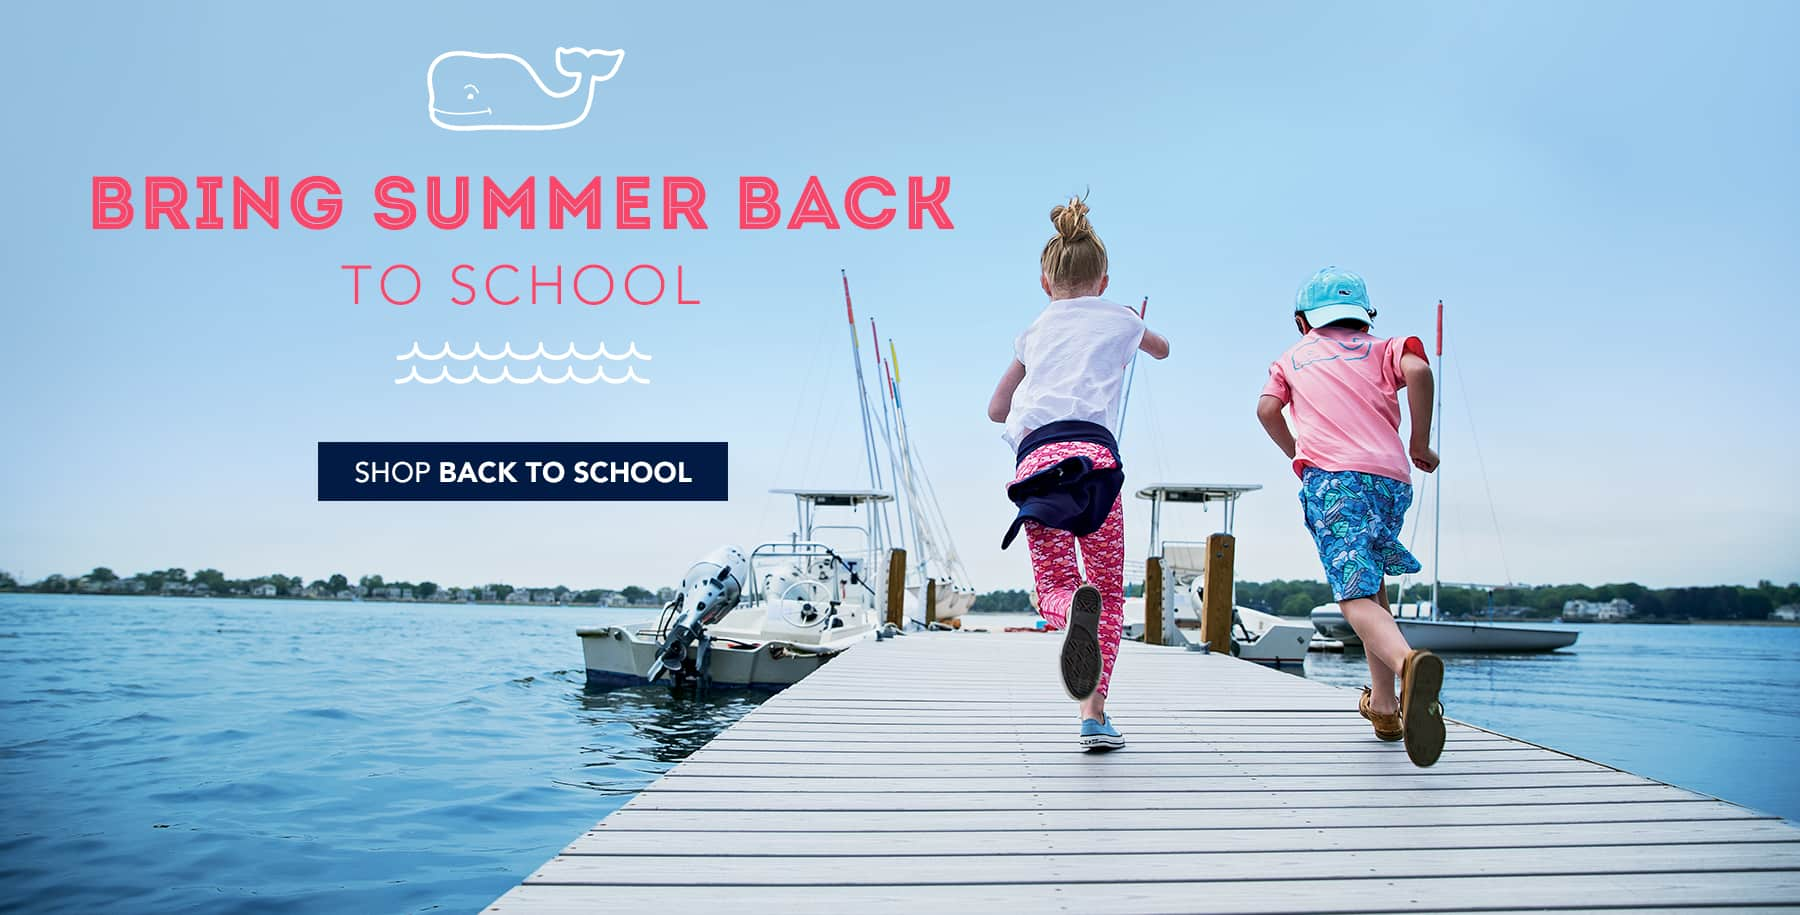 Bring Summer Back To School. Shop Back To School.